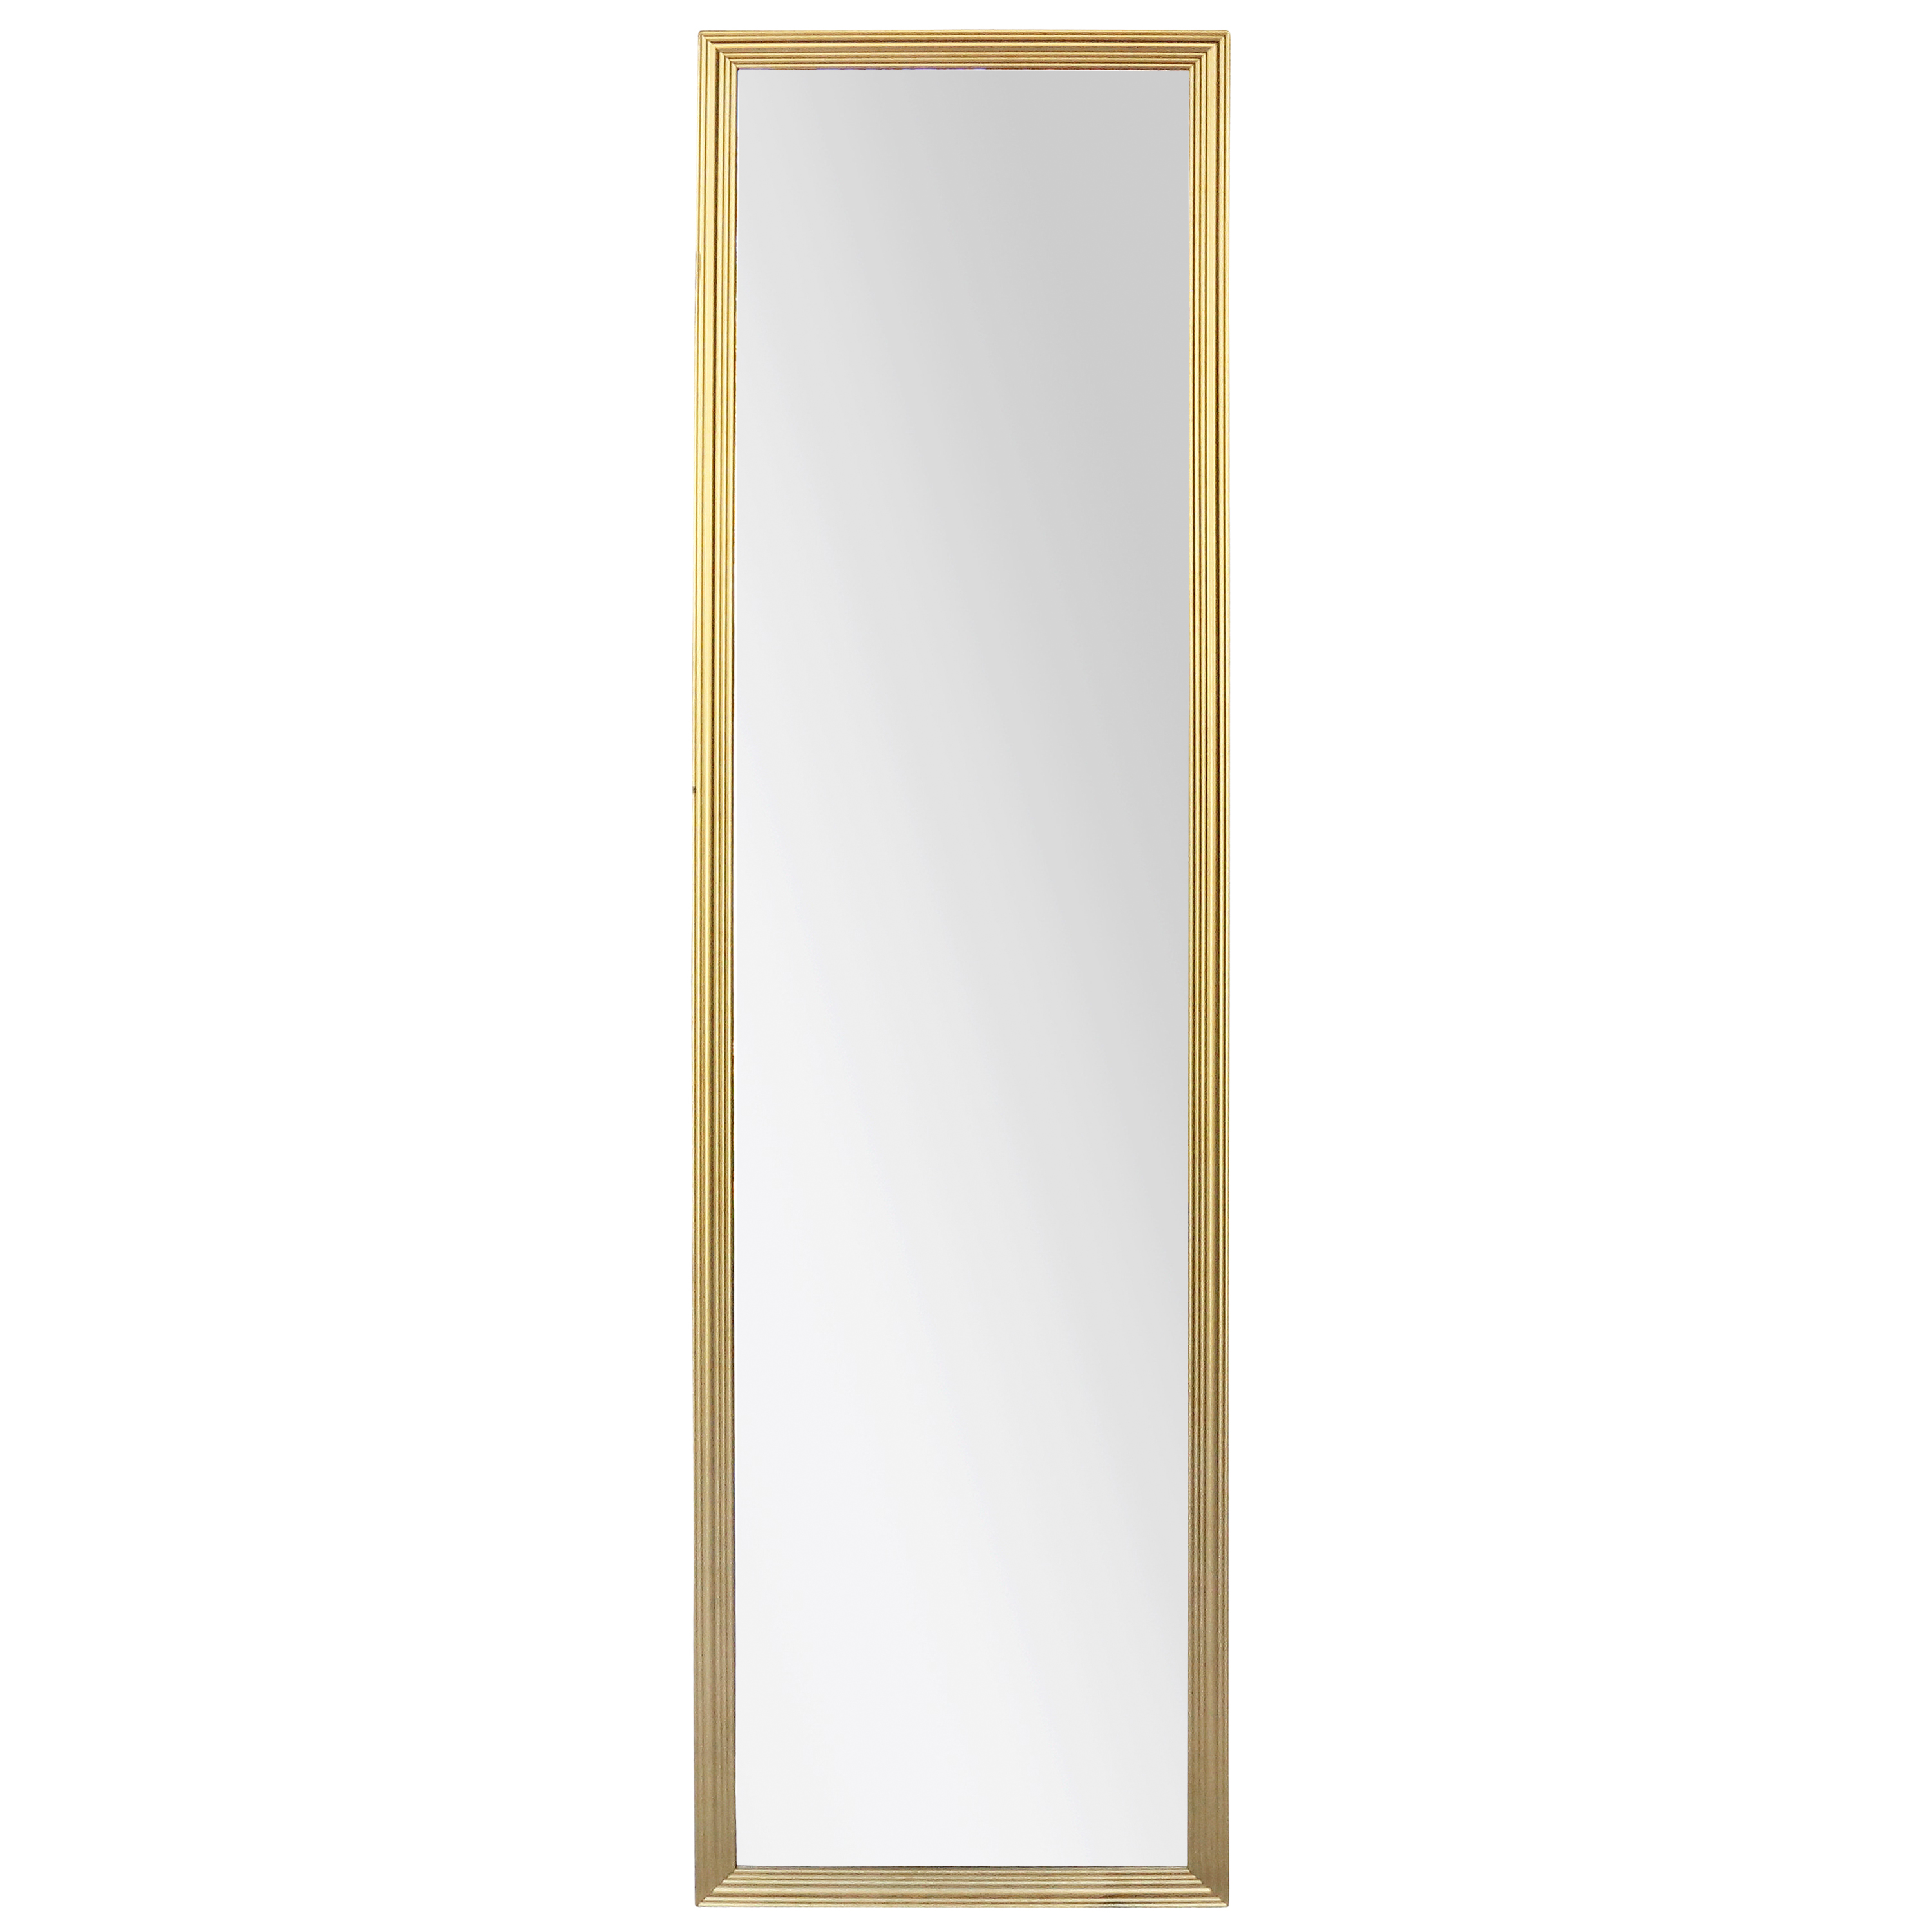 Mainstays Gold Door Mirror, 34x125.4 cm or 13.39x49.37 inches by